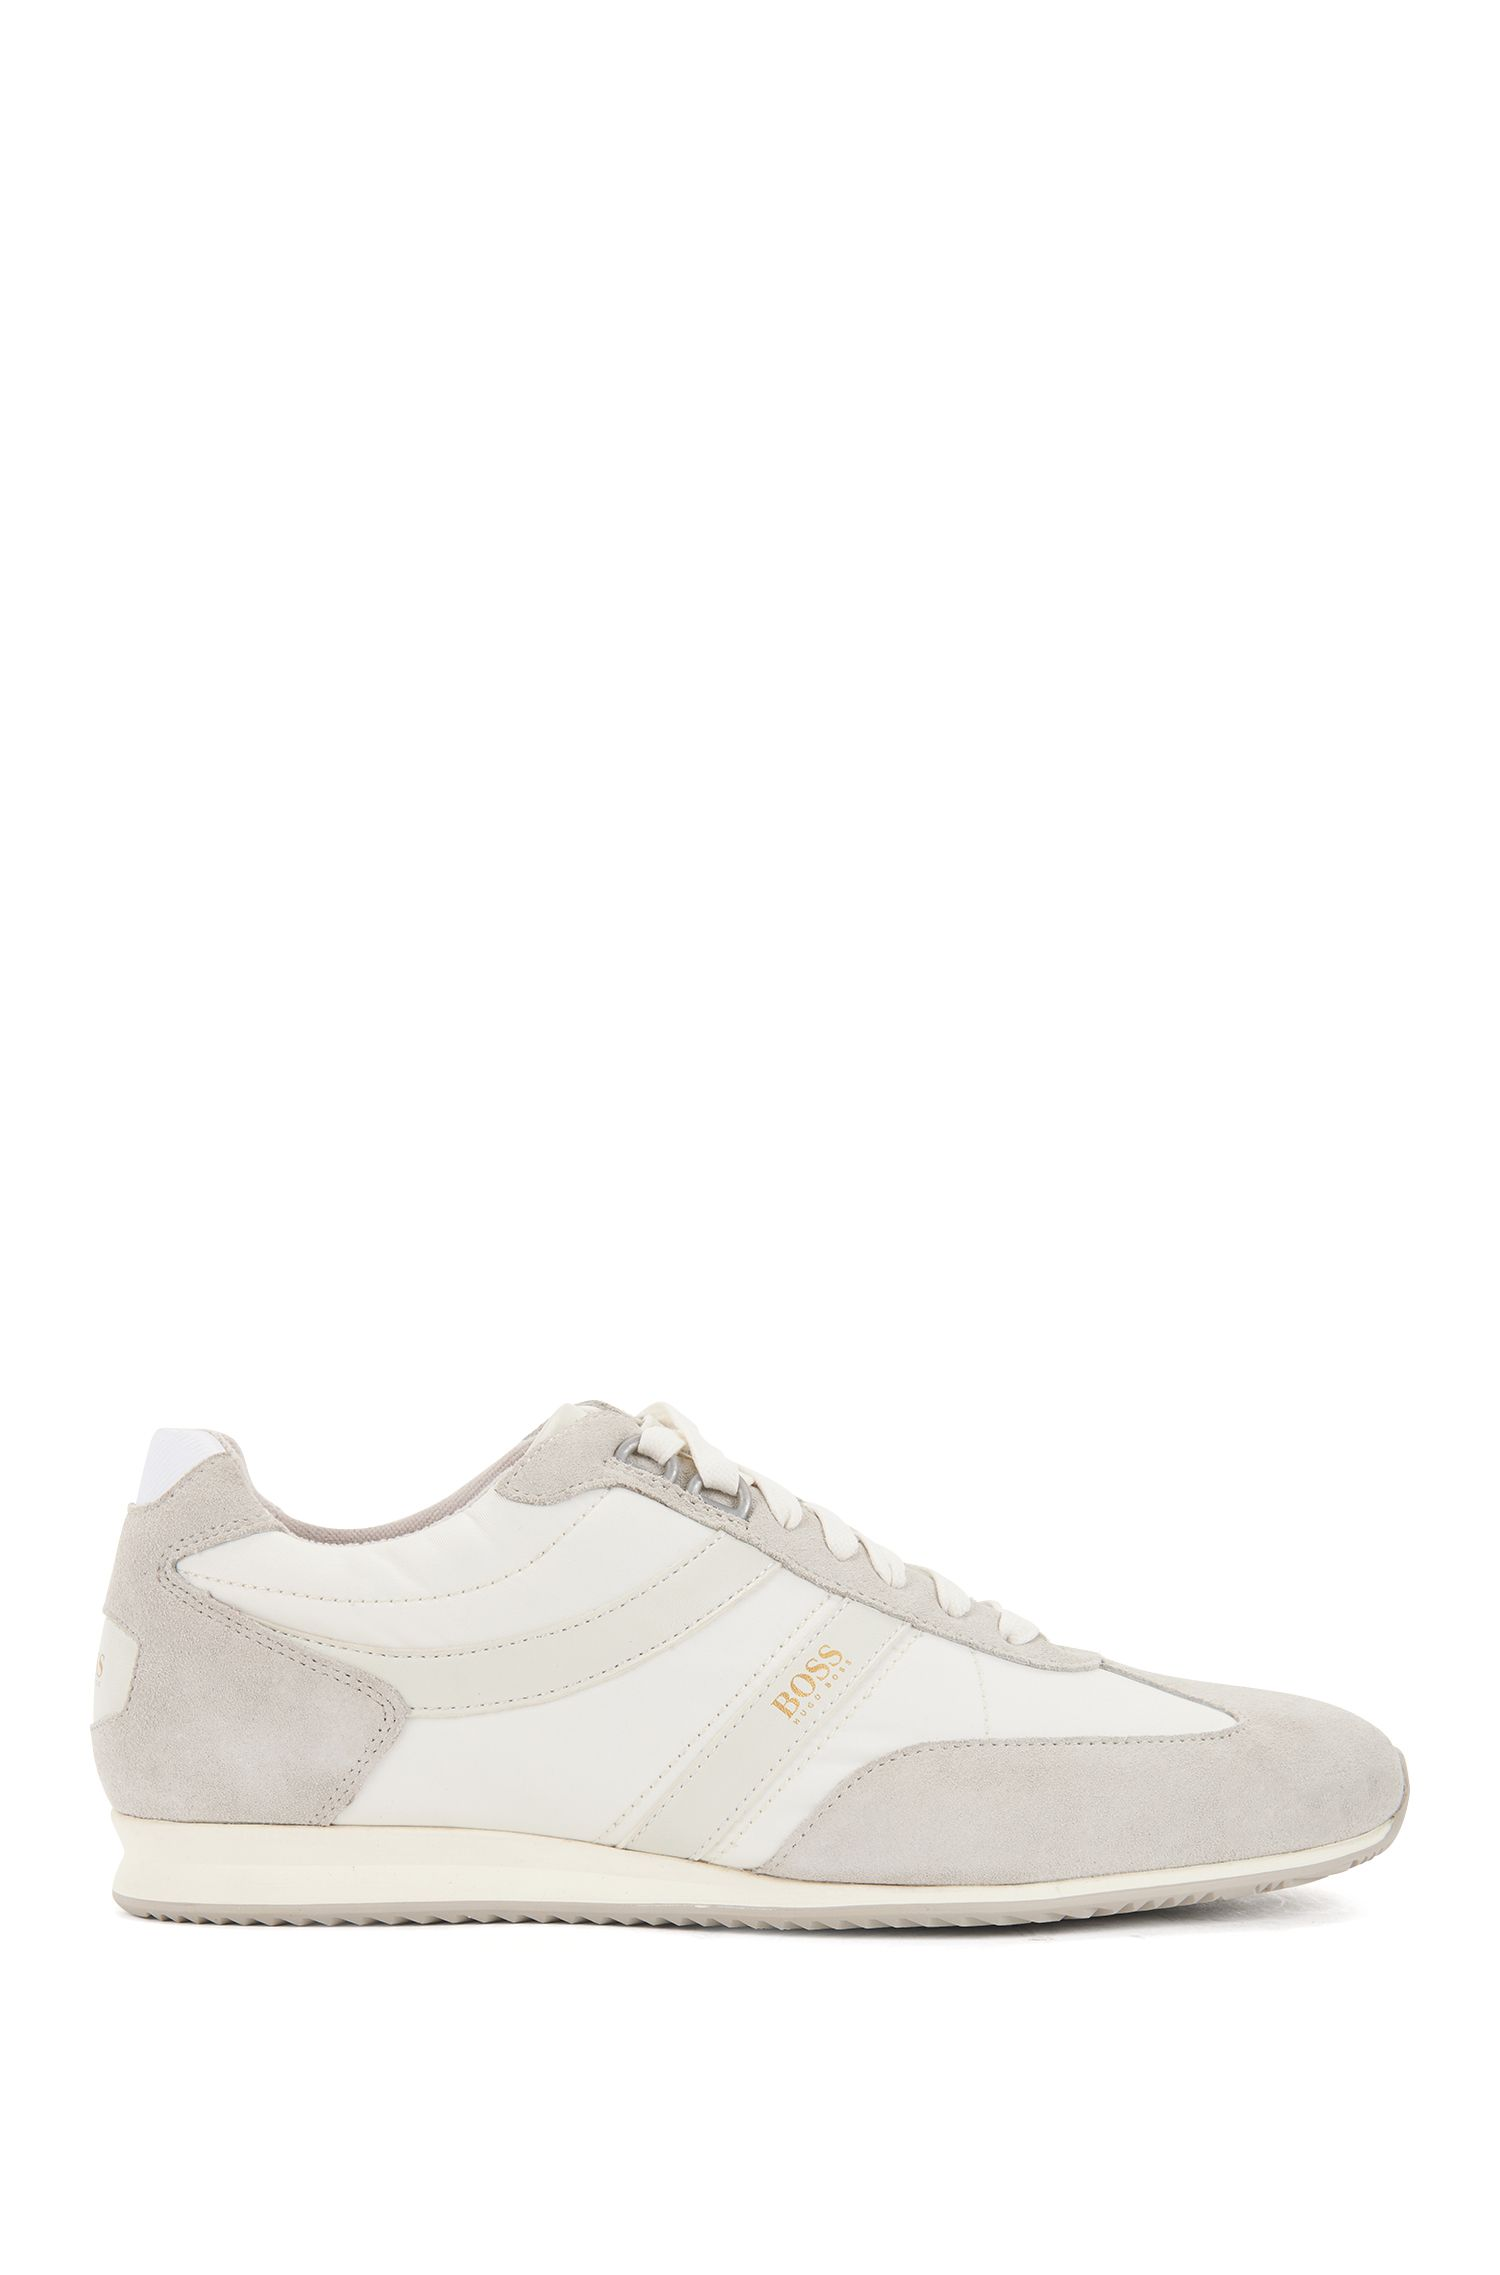 Lace-up trainers with suede overlays